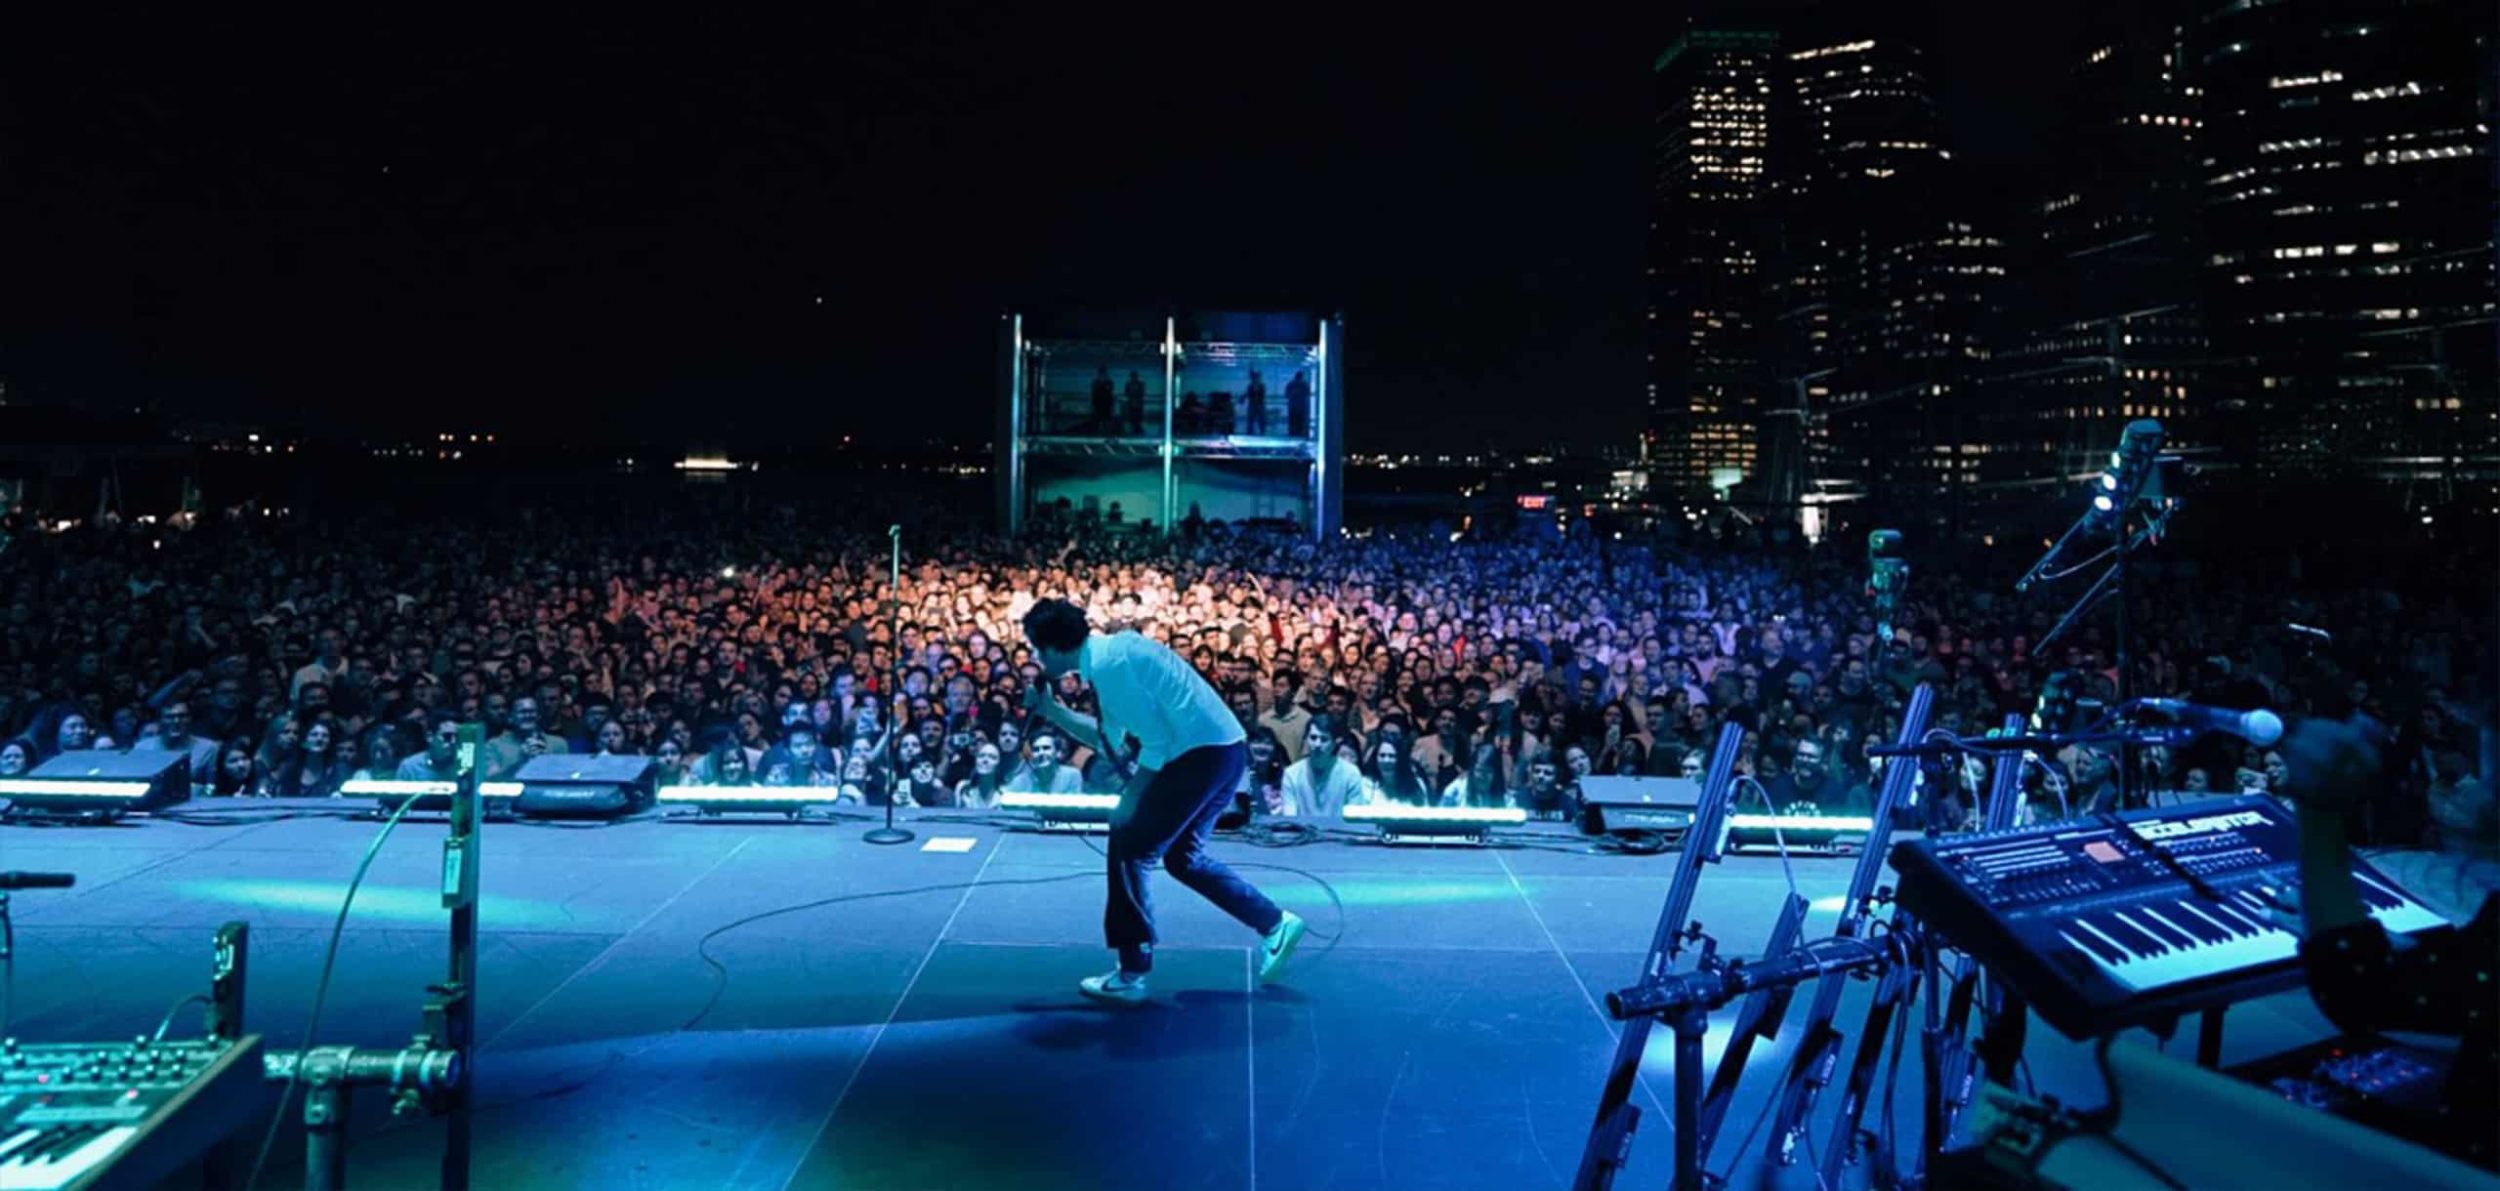 Passion Pit performing at Pier 17